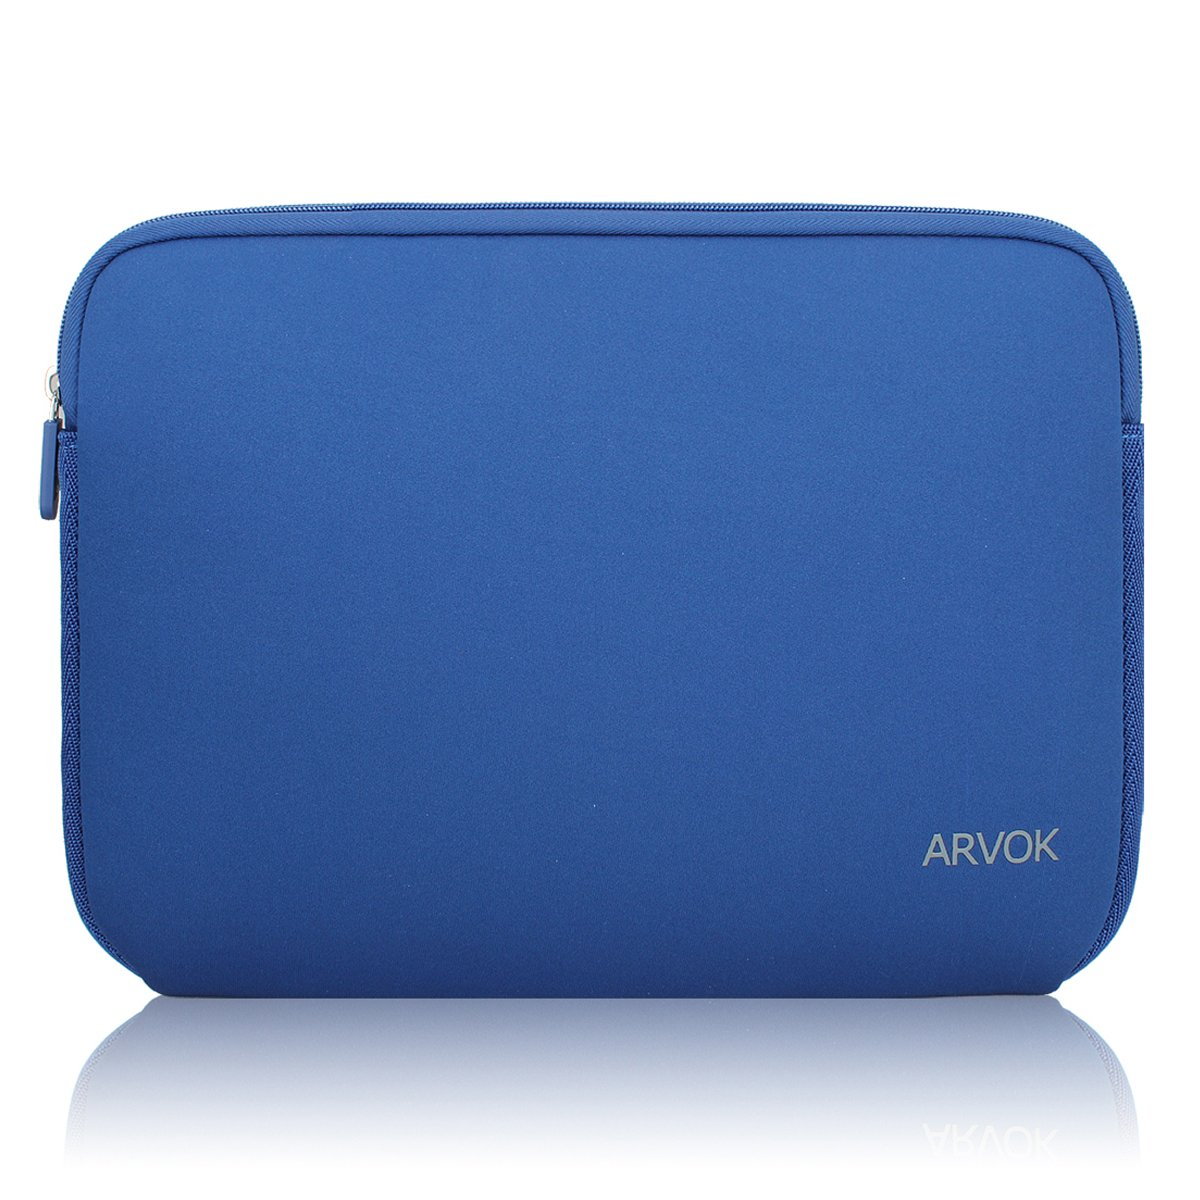 Arvok 17-17.3 Inch Laptop Sleeve Multi-color & Size Choices Case/Water-resistant Neoprene Notebook Computer Pocket Tablet Briefcase Carrying Bag/Pouch Skin Cover For Acer/Asus/Dell/Lenovo, Dark Blue